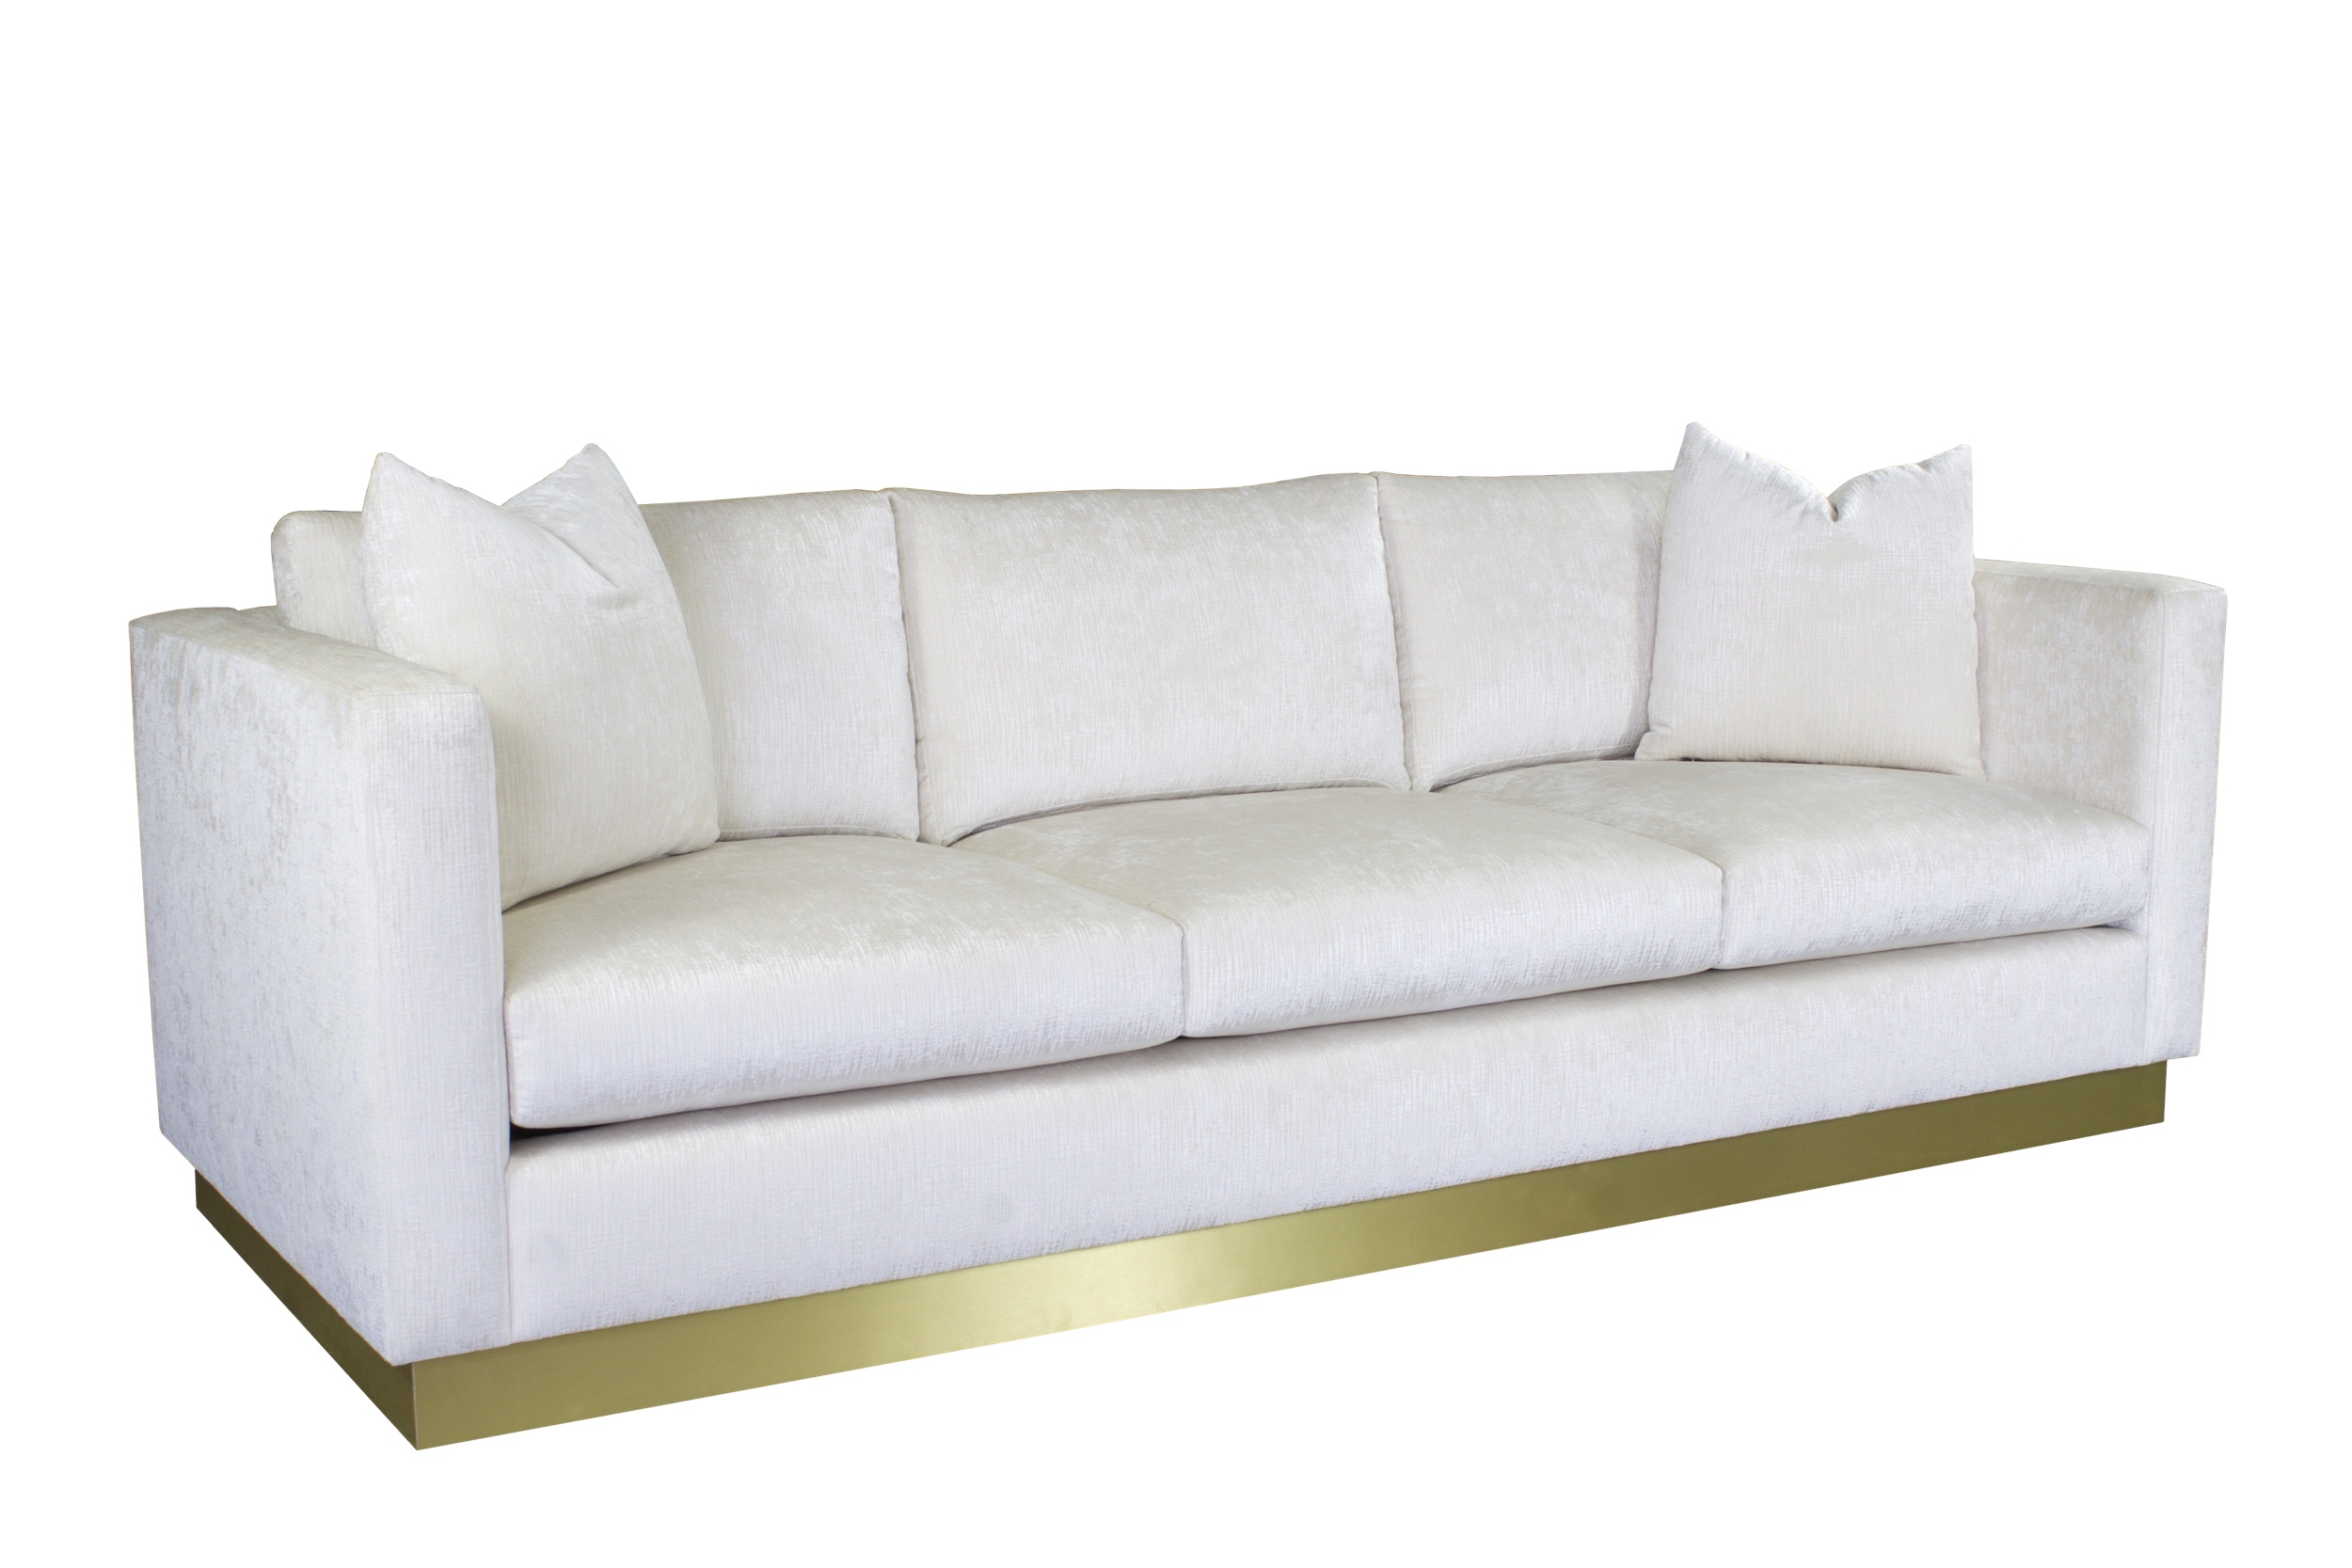 Adrian_3_cushion_sofa_three_quarter